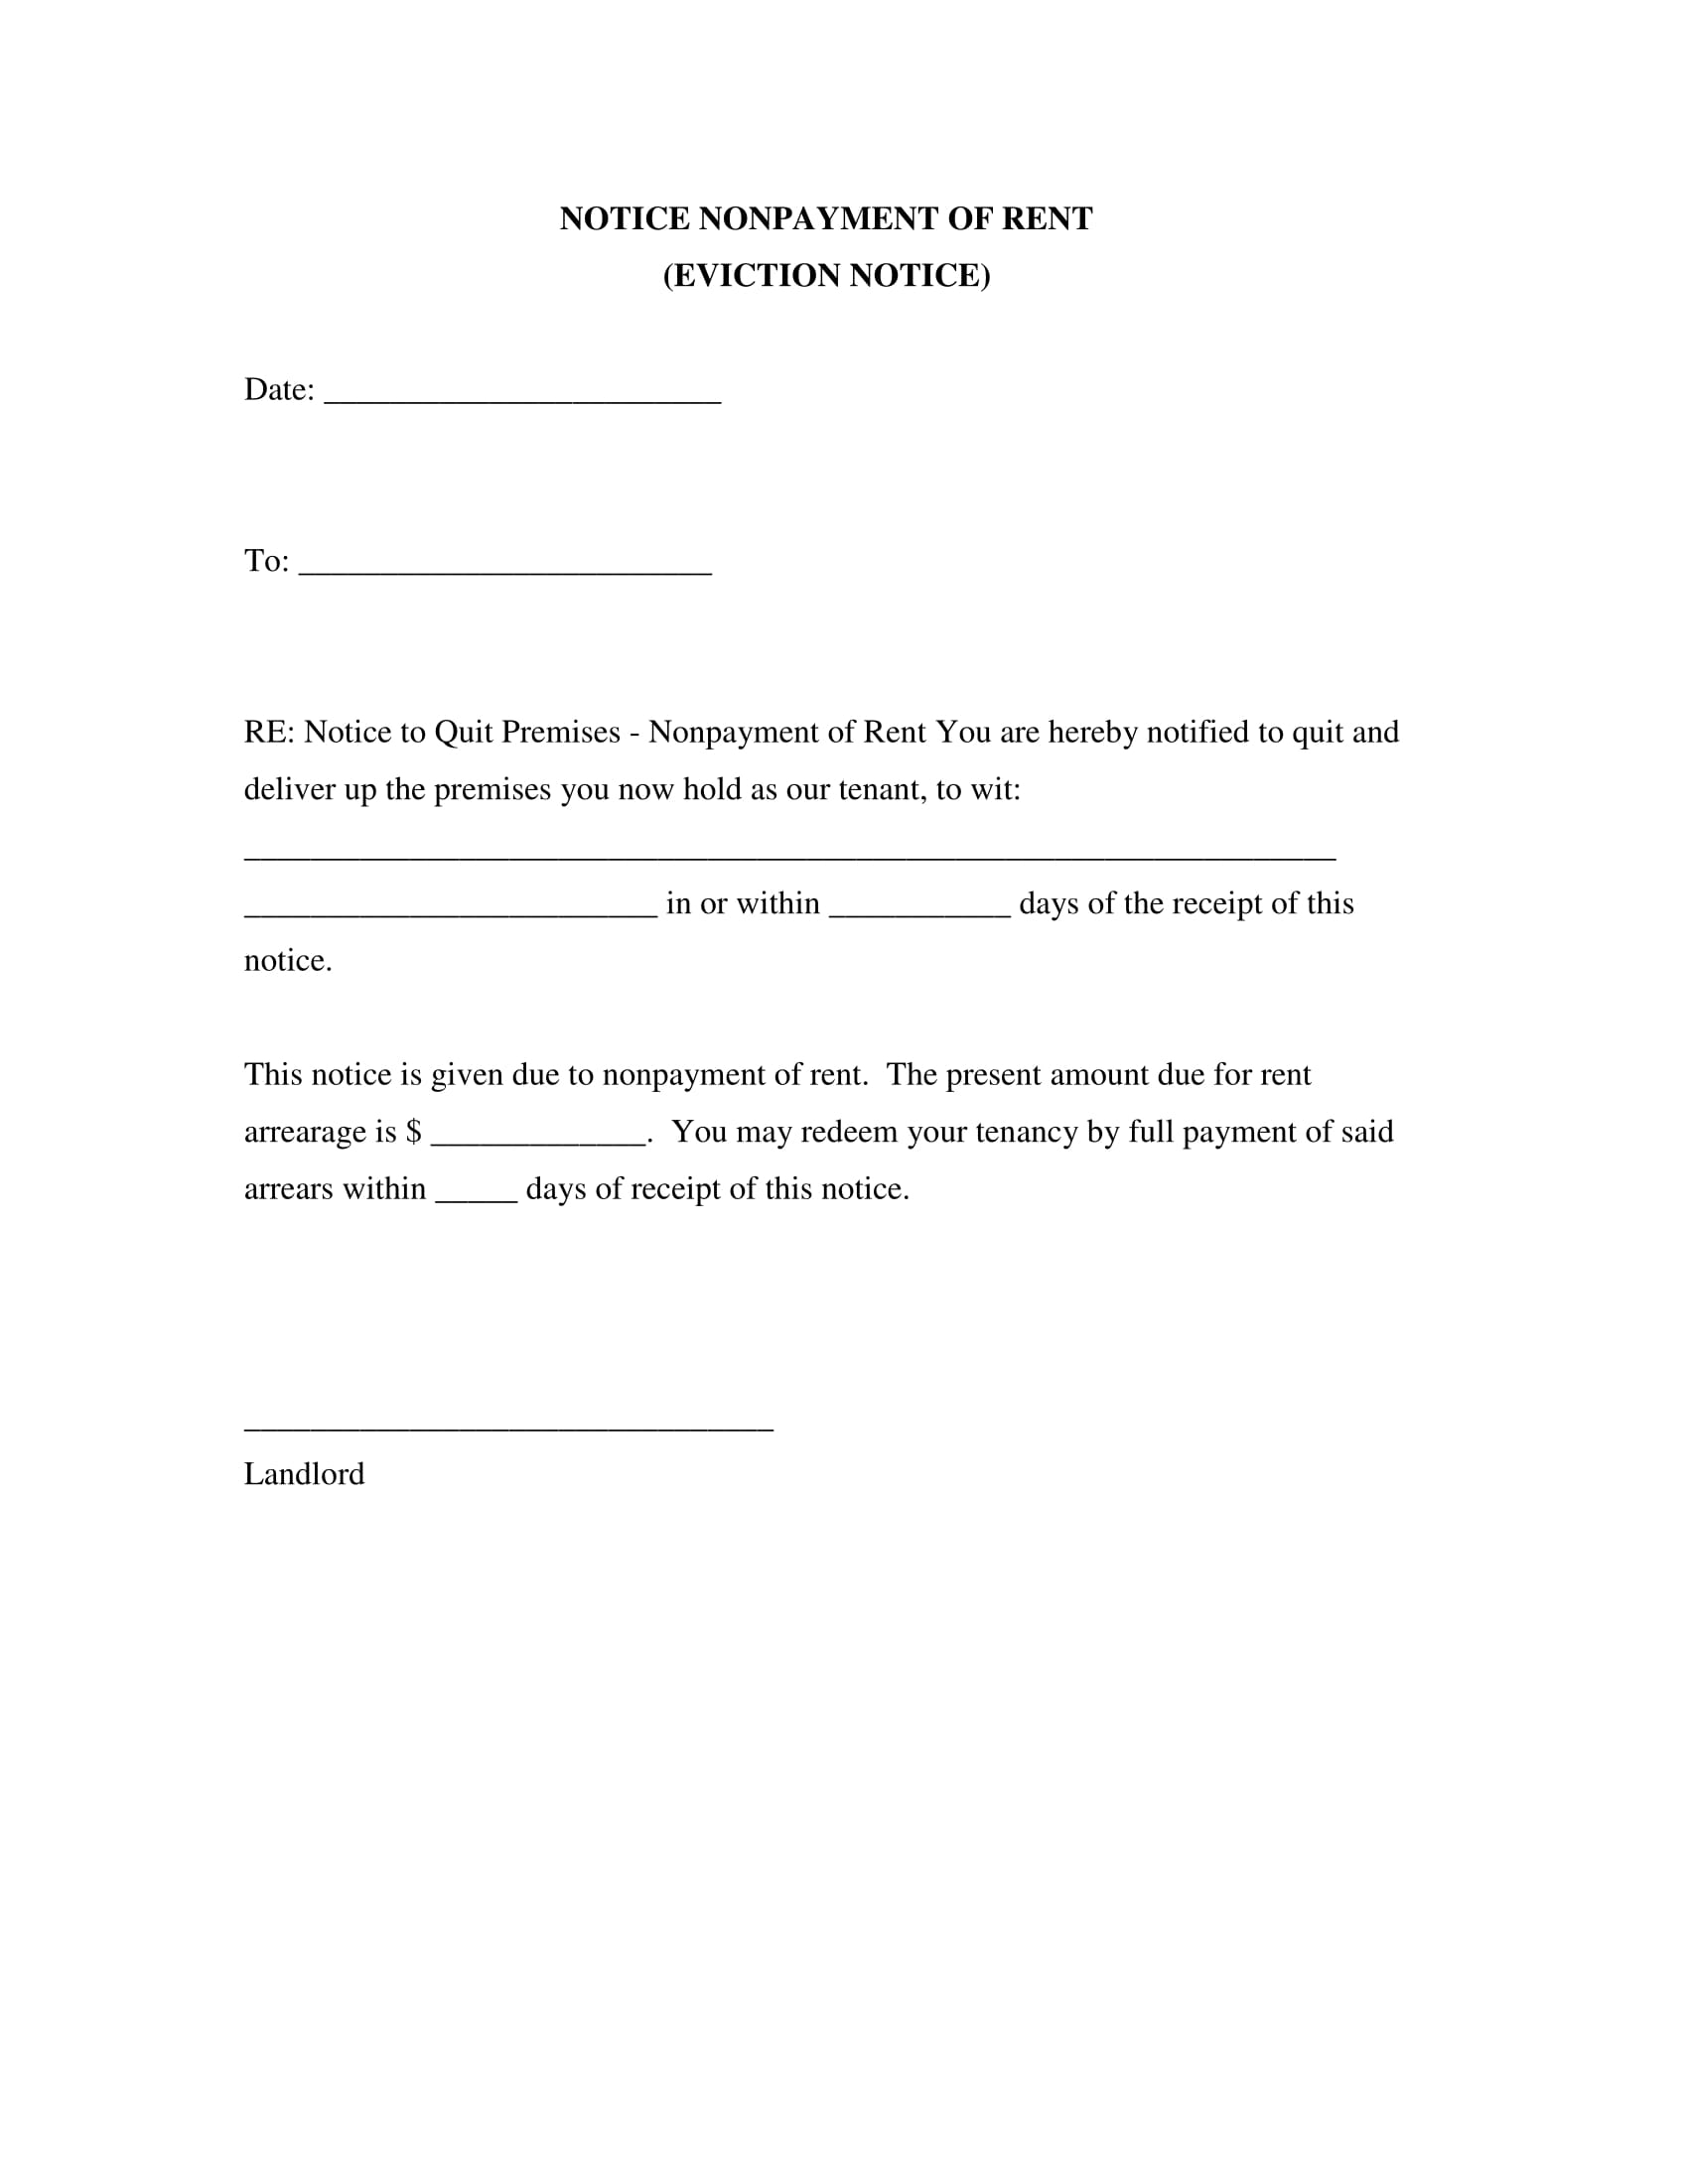 Eviction Notice Form Sample  Landlord Eviction Notice Sample